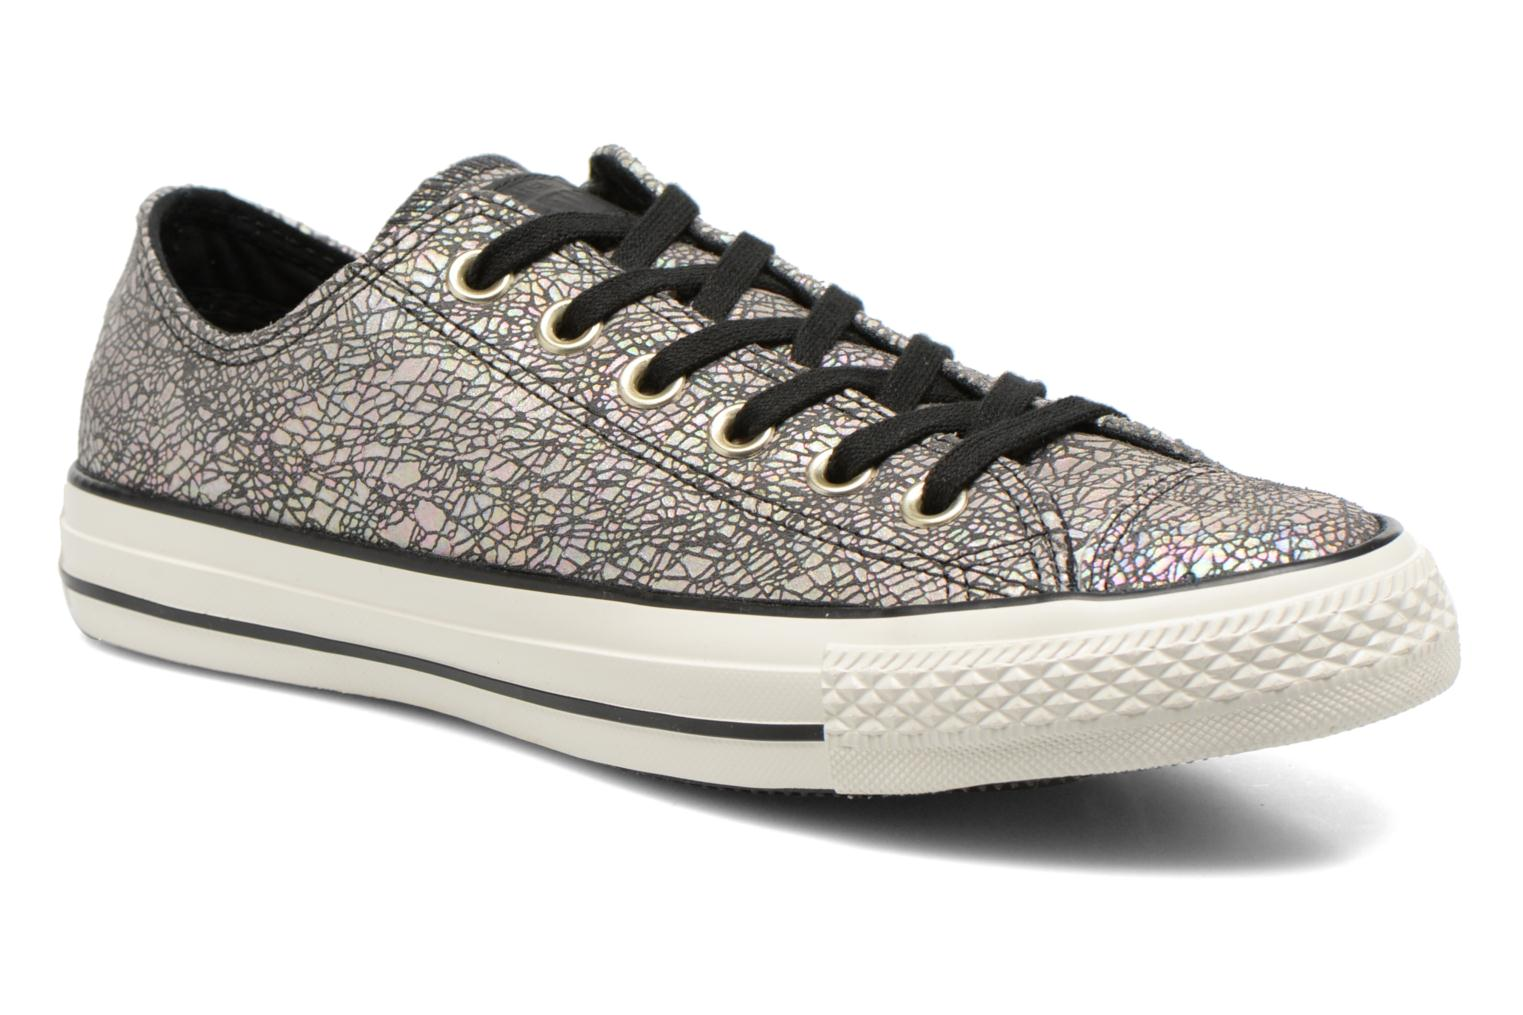 Chuck Taylor All Star Ox Oil Slick Leather W Black/Egret/Black